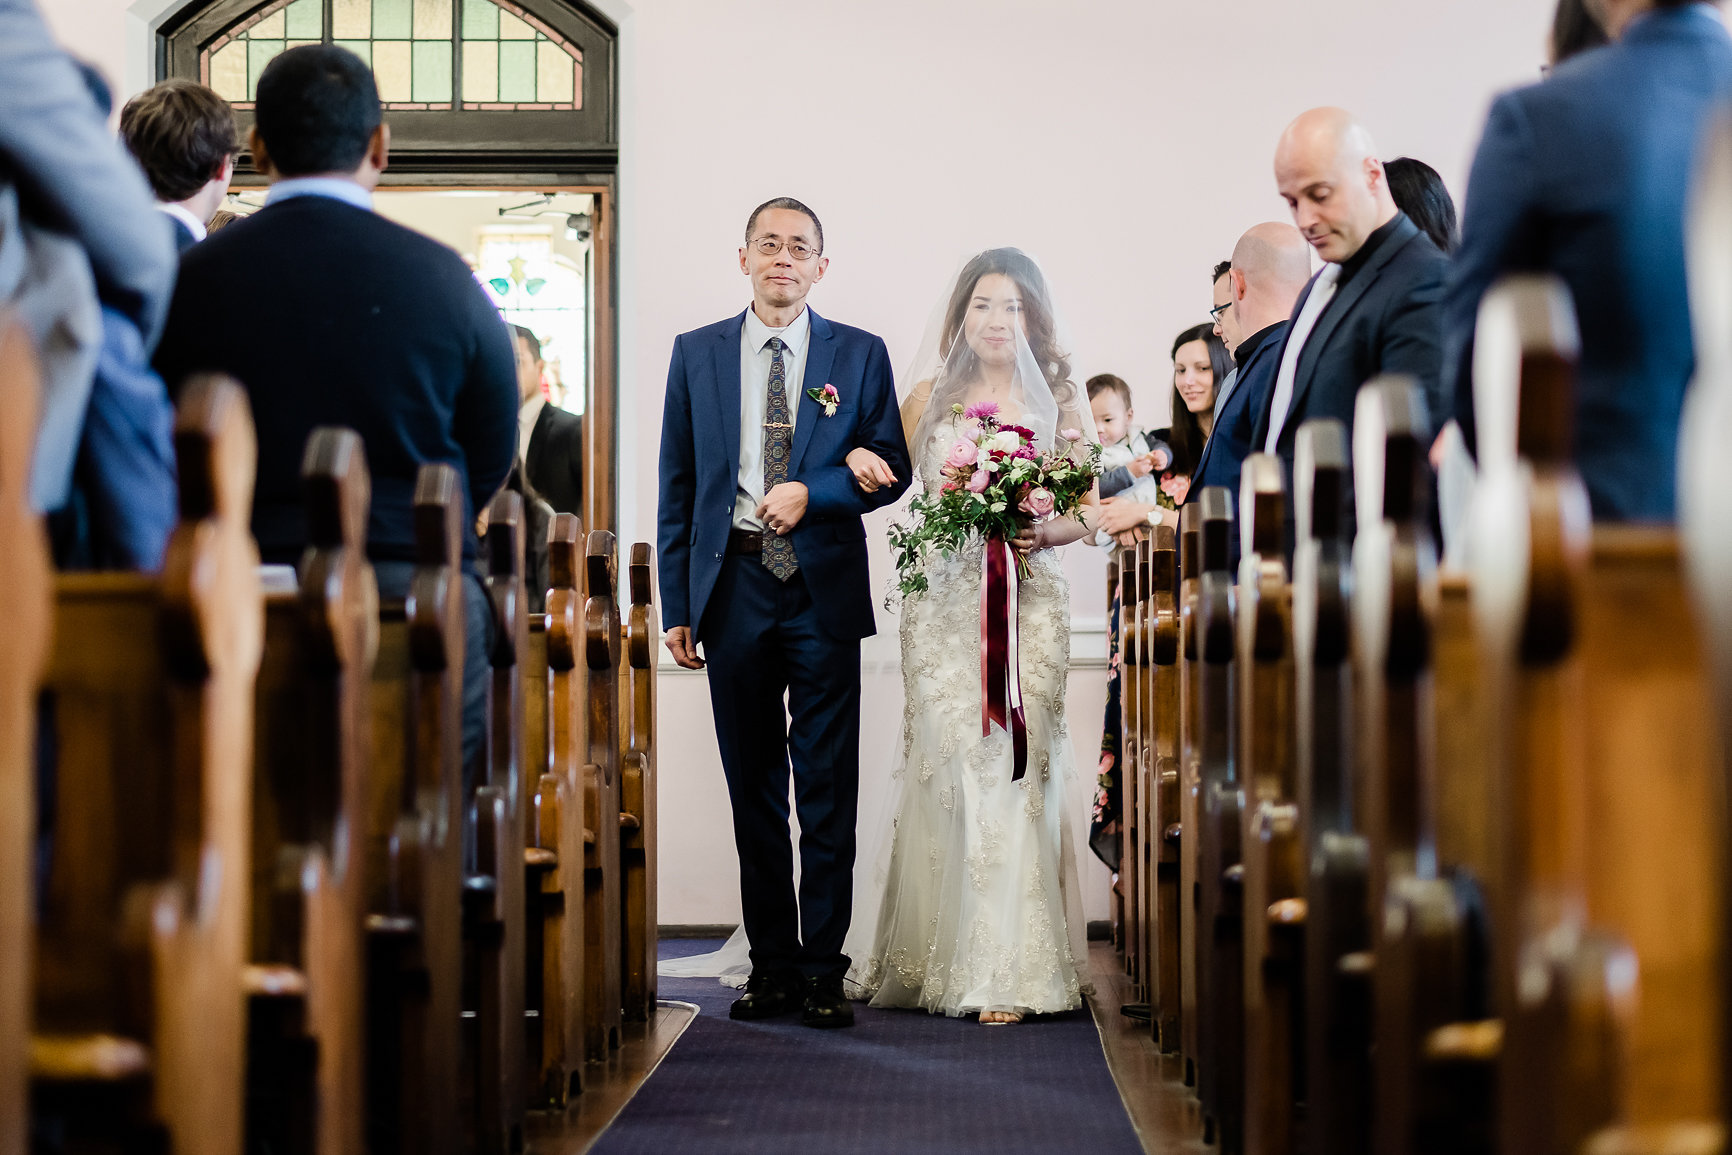 Sydney Wedding Photography Drummoyne Presbyterian Chuch Lauriston House Function Centre - 088.jpg